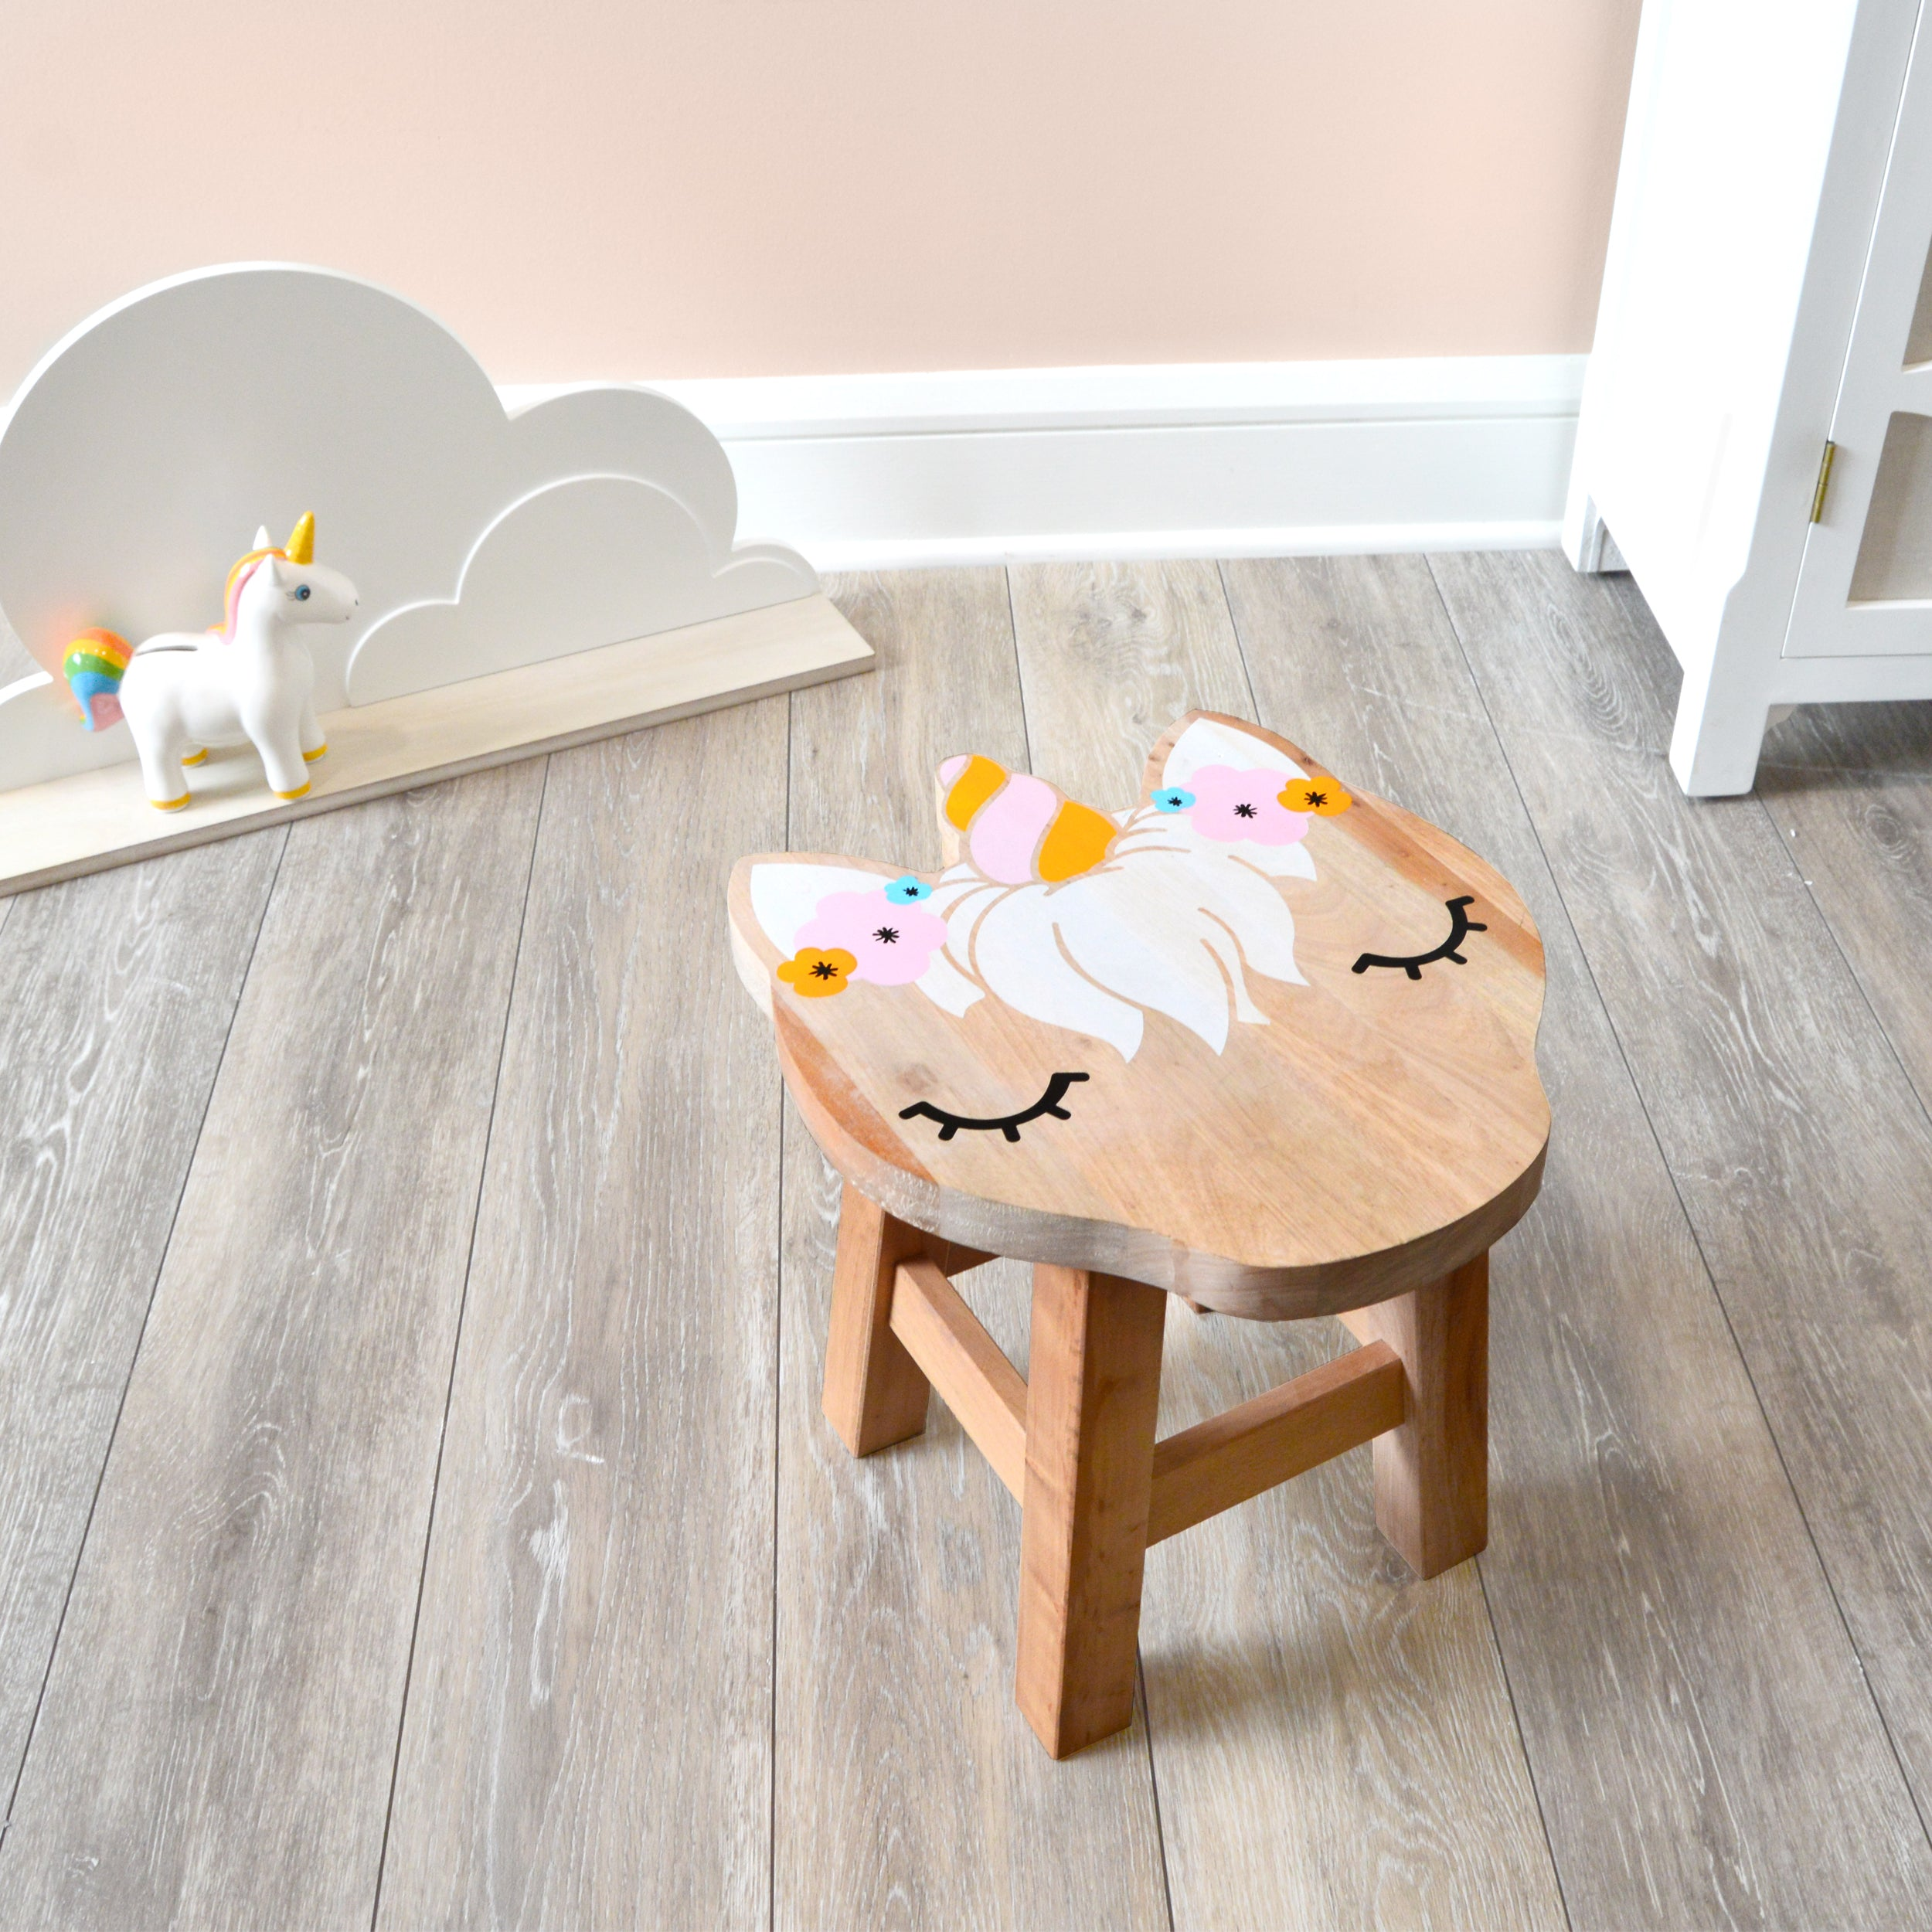 Unicorn Shaped Children's Stool with Color Printed Seat